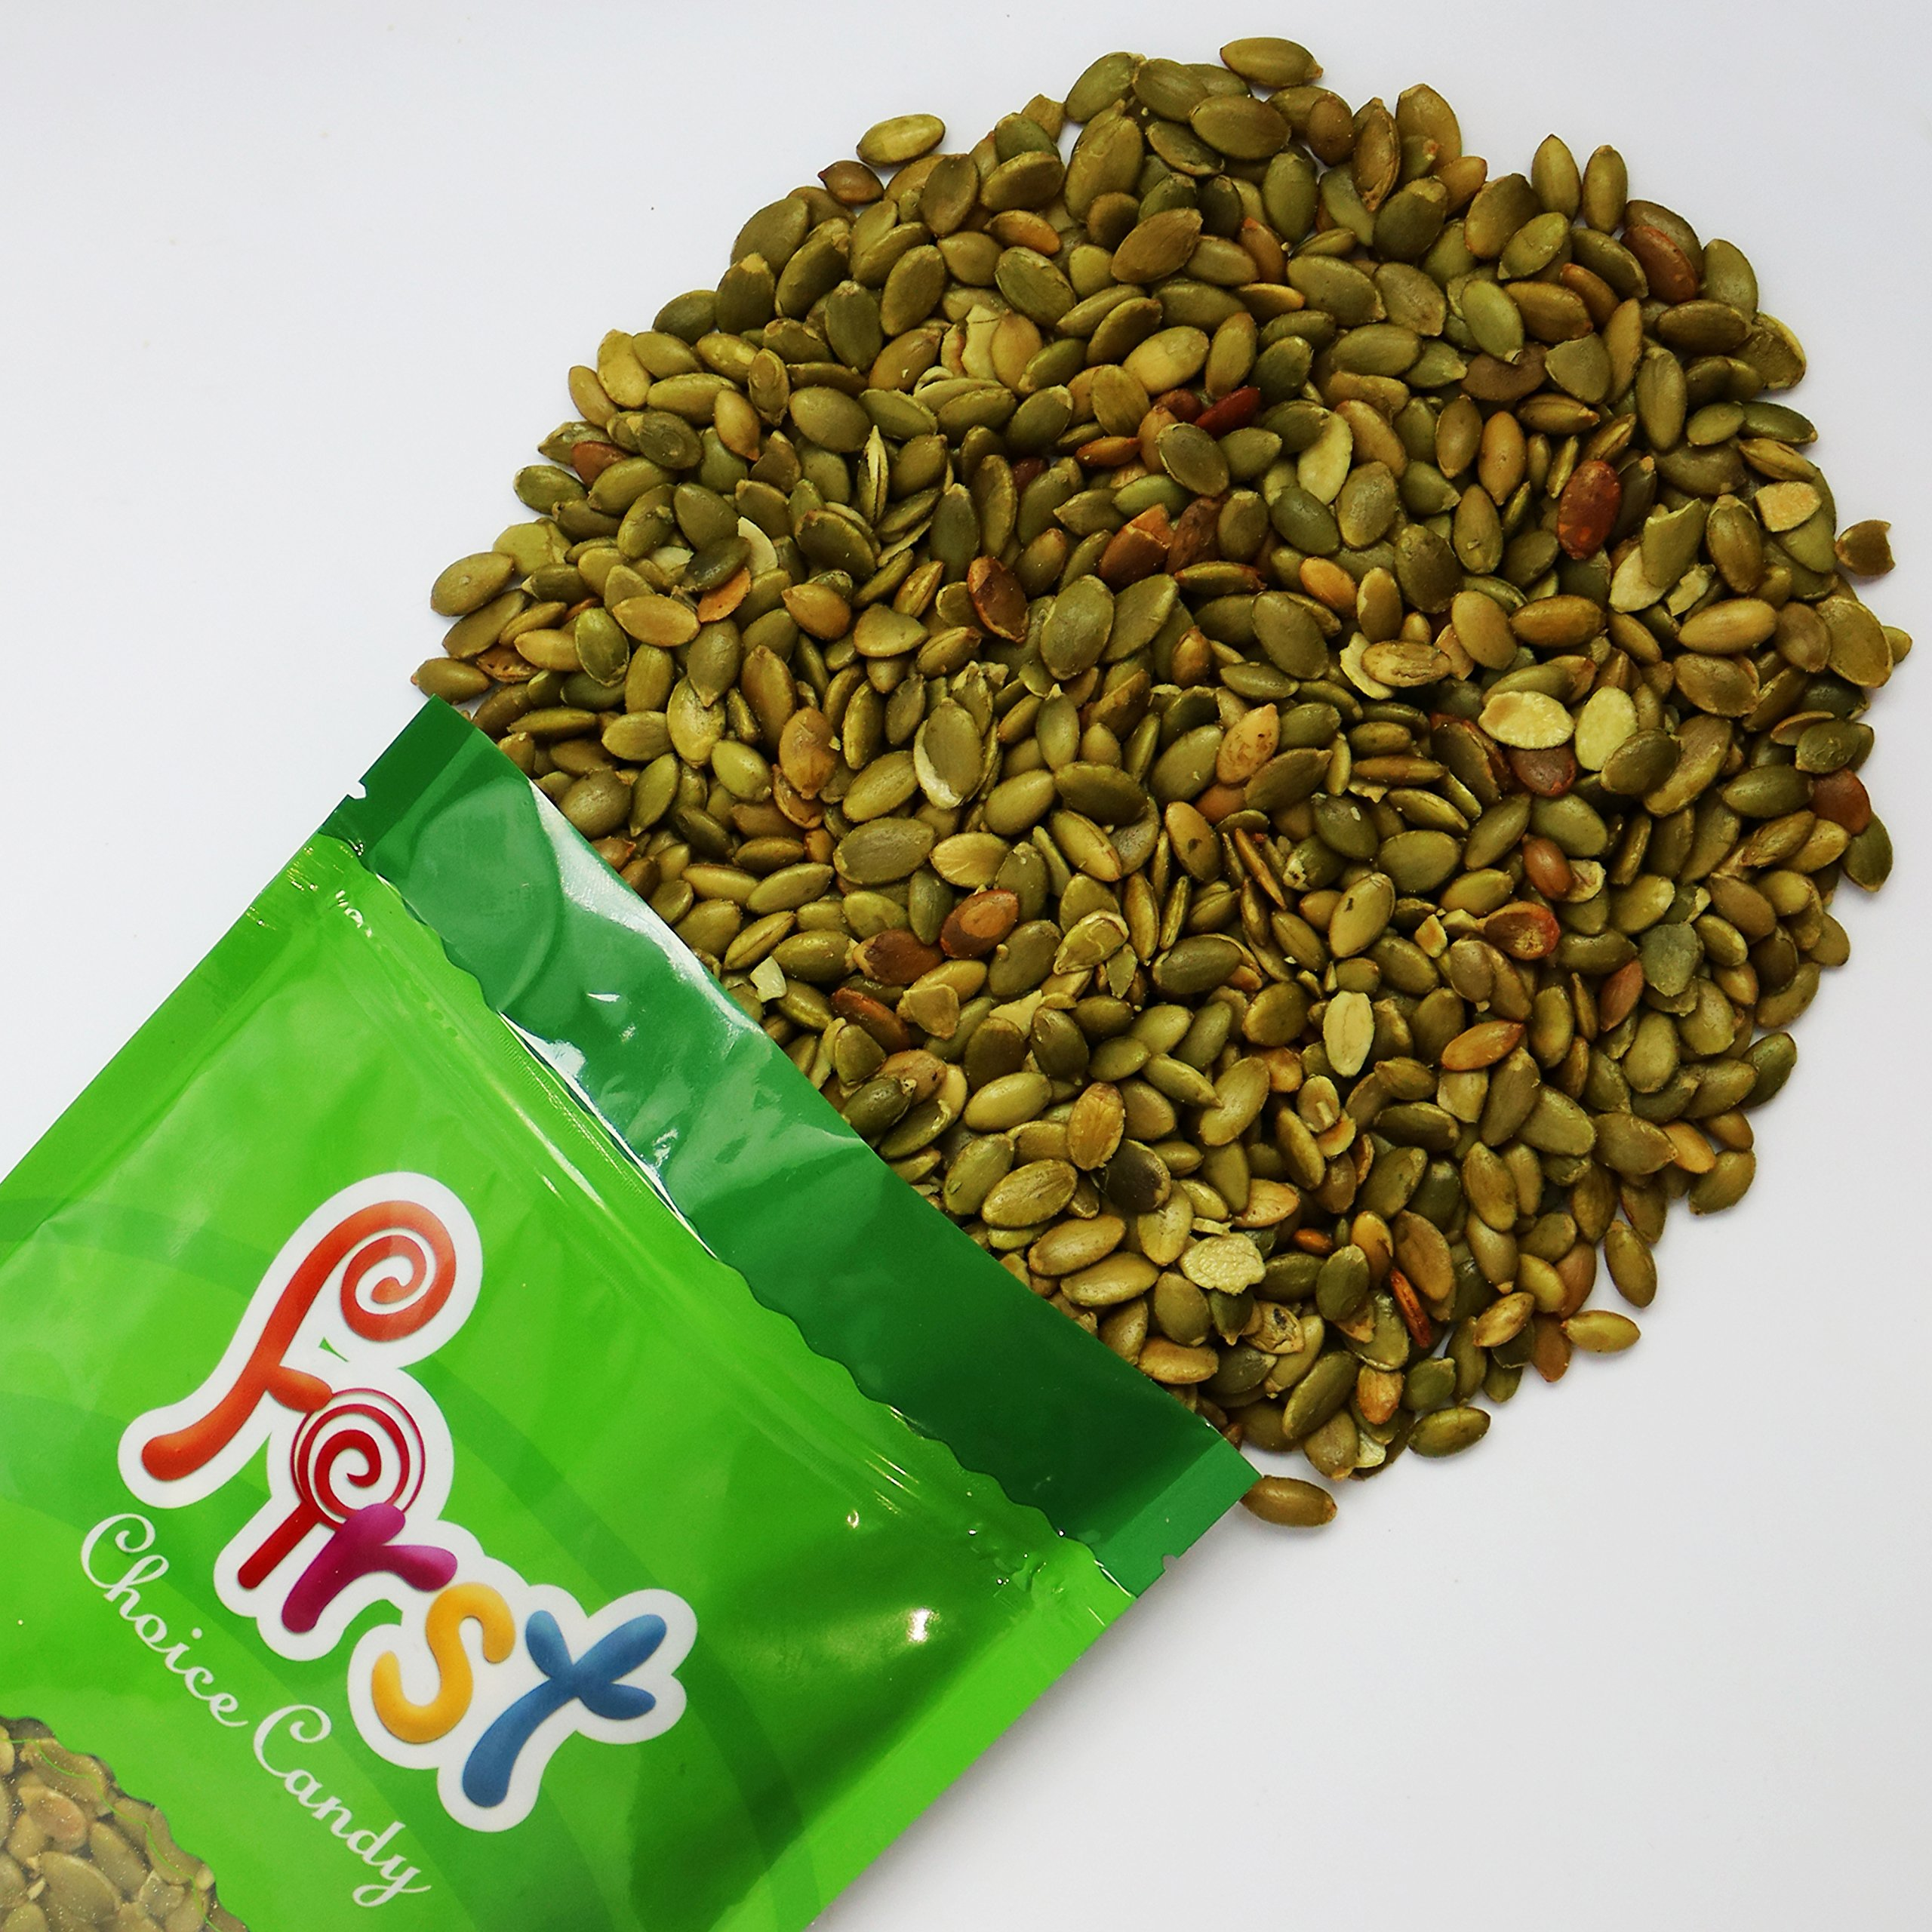 Pumpkin Seeds Pepitas Roasted/Salted 1.5 Pound In a FirstChoiceCandy Resealable Bag by FirstChoiceCandy